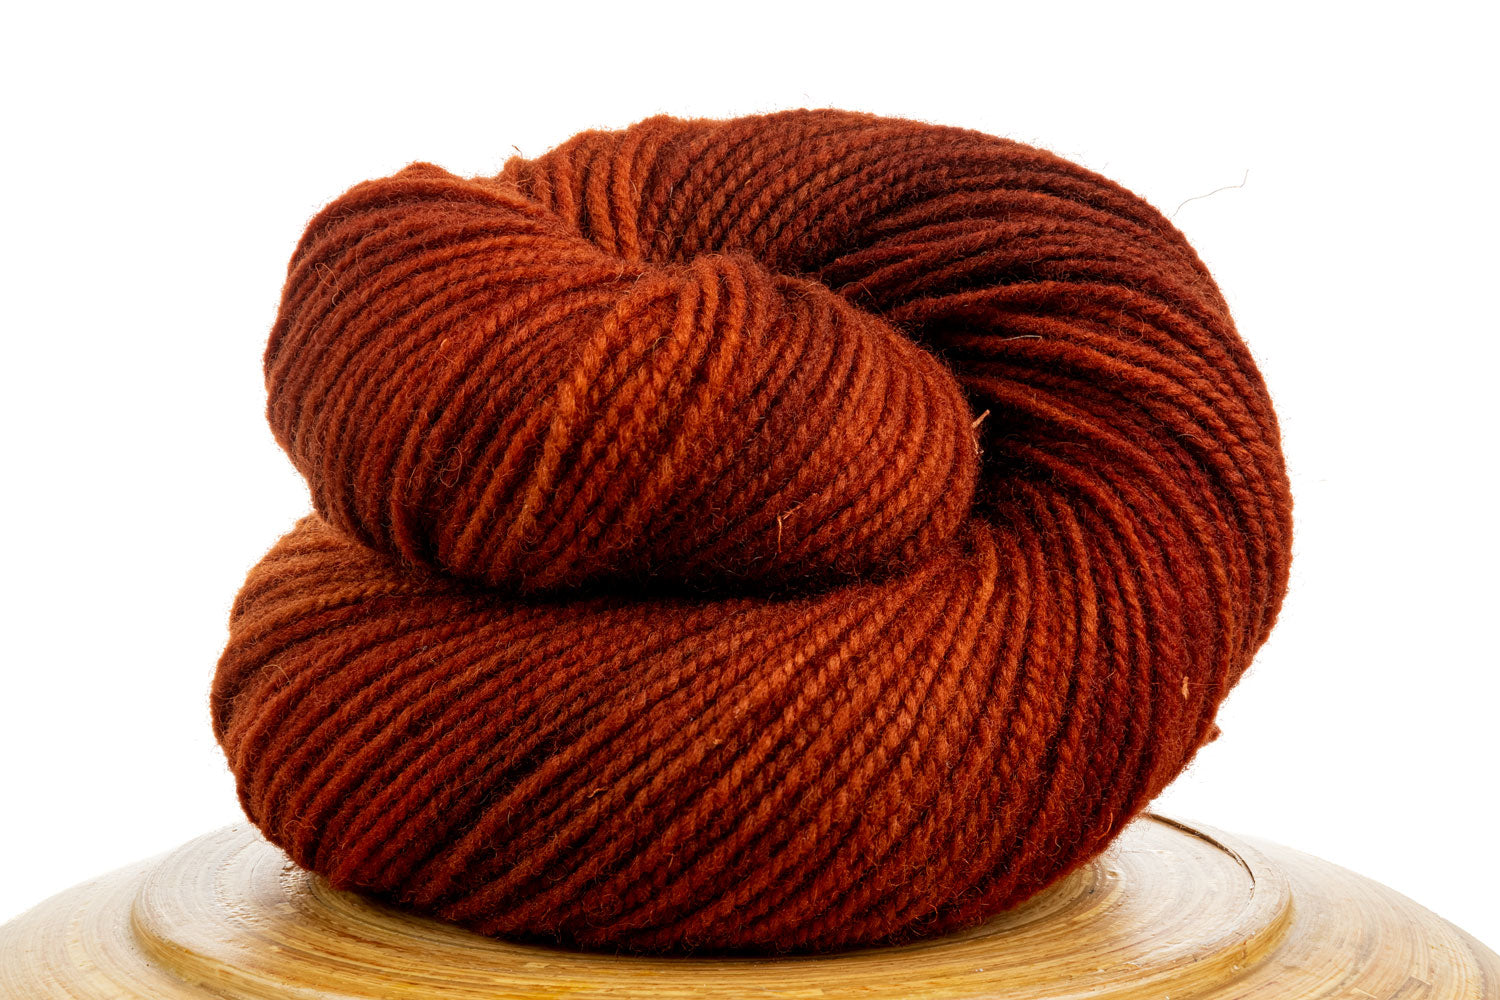 Winfield Canadian hand-dyed wool yarn in Sugar Maple, a deep orange